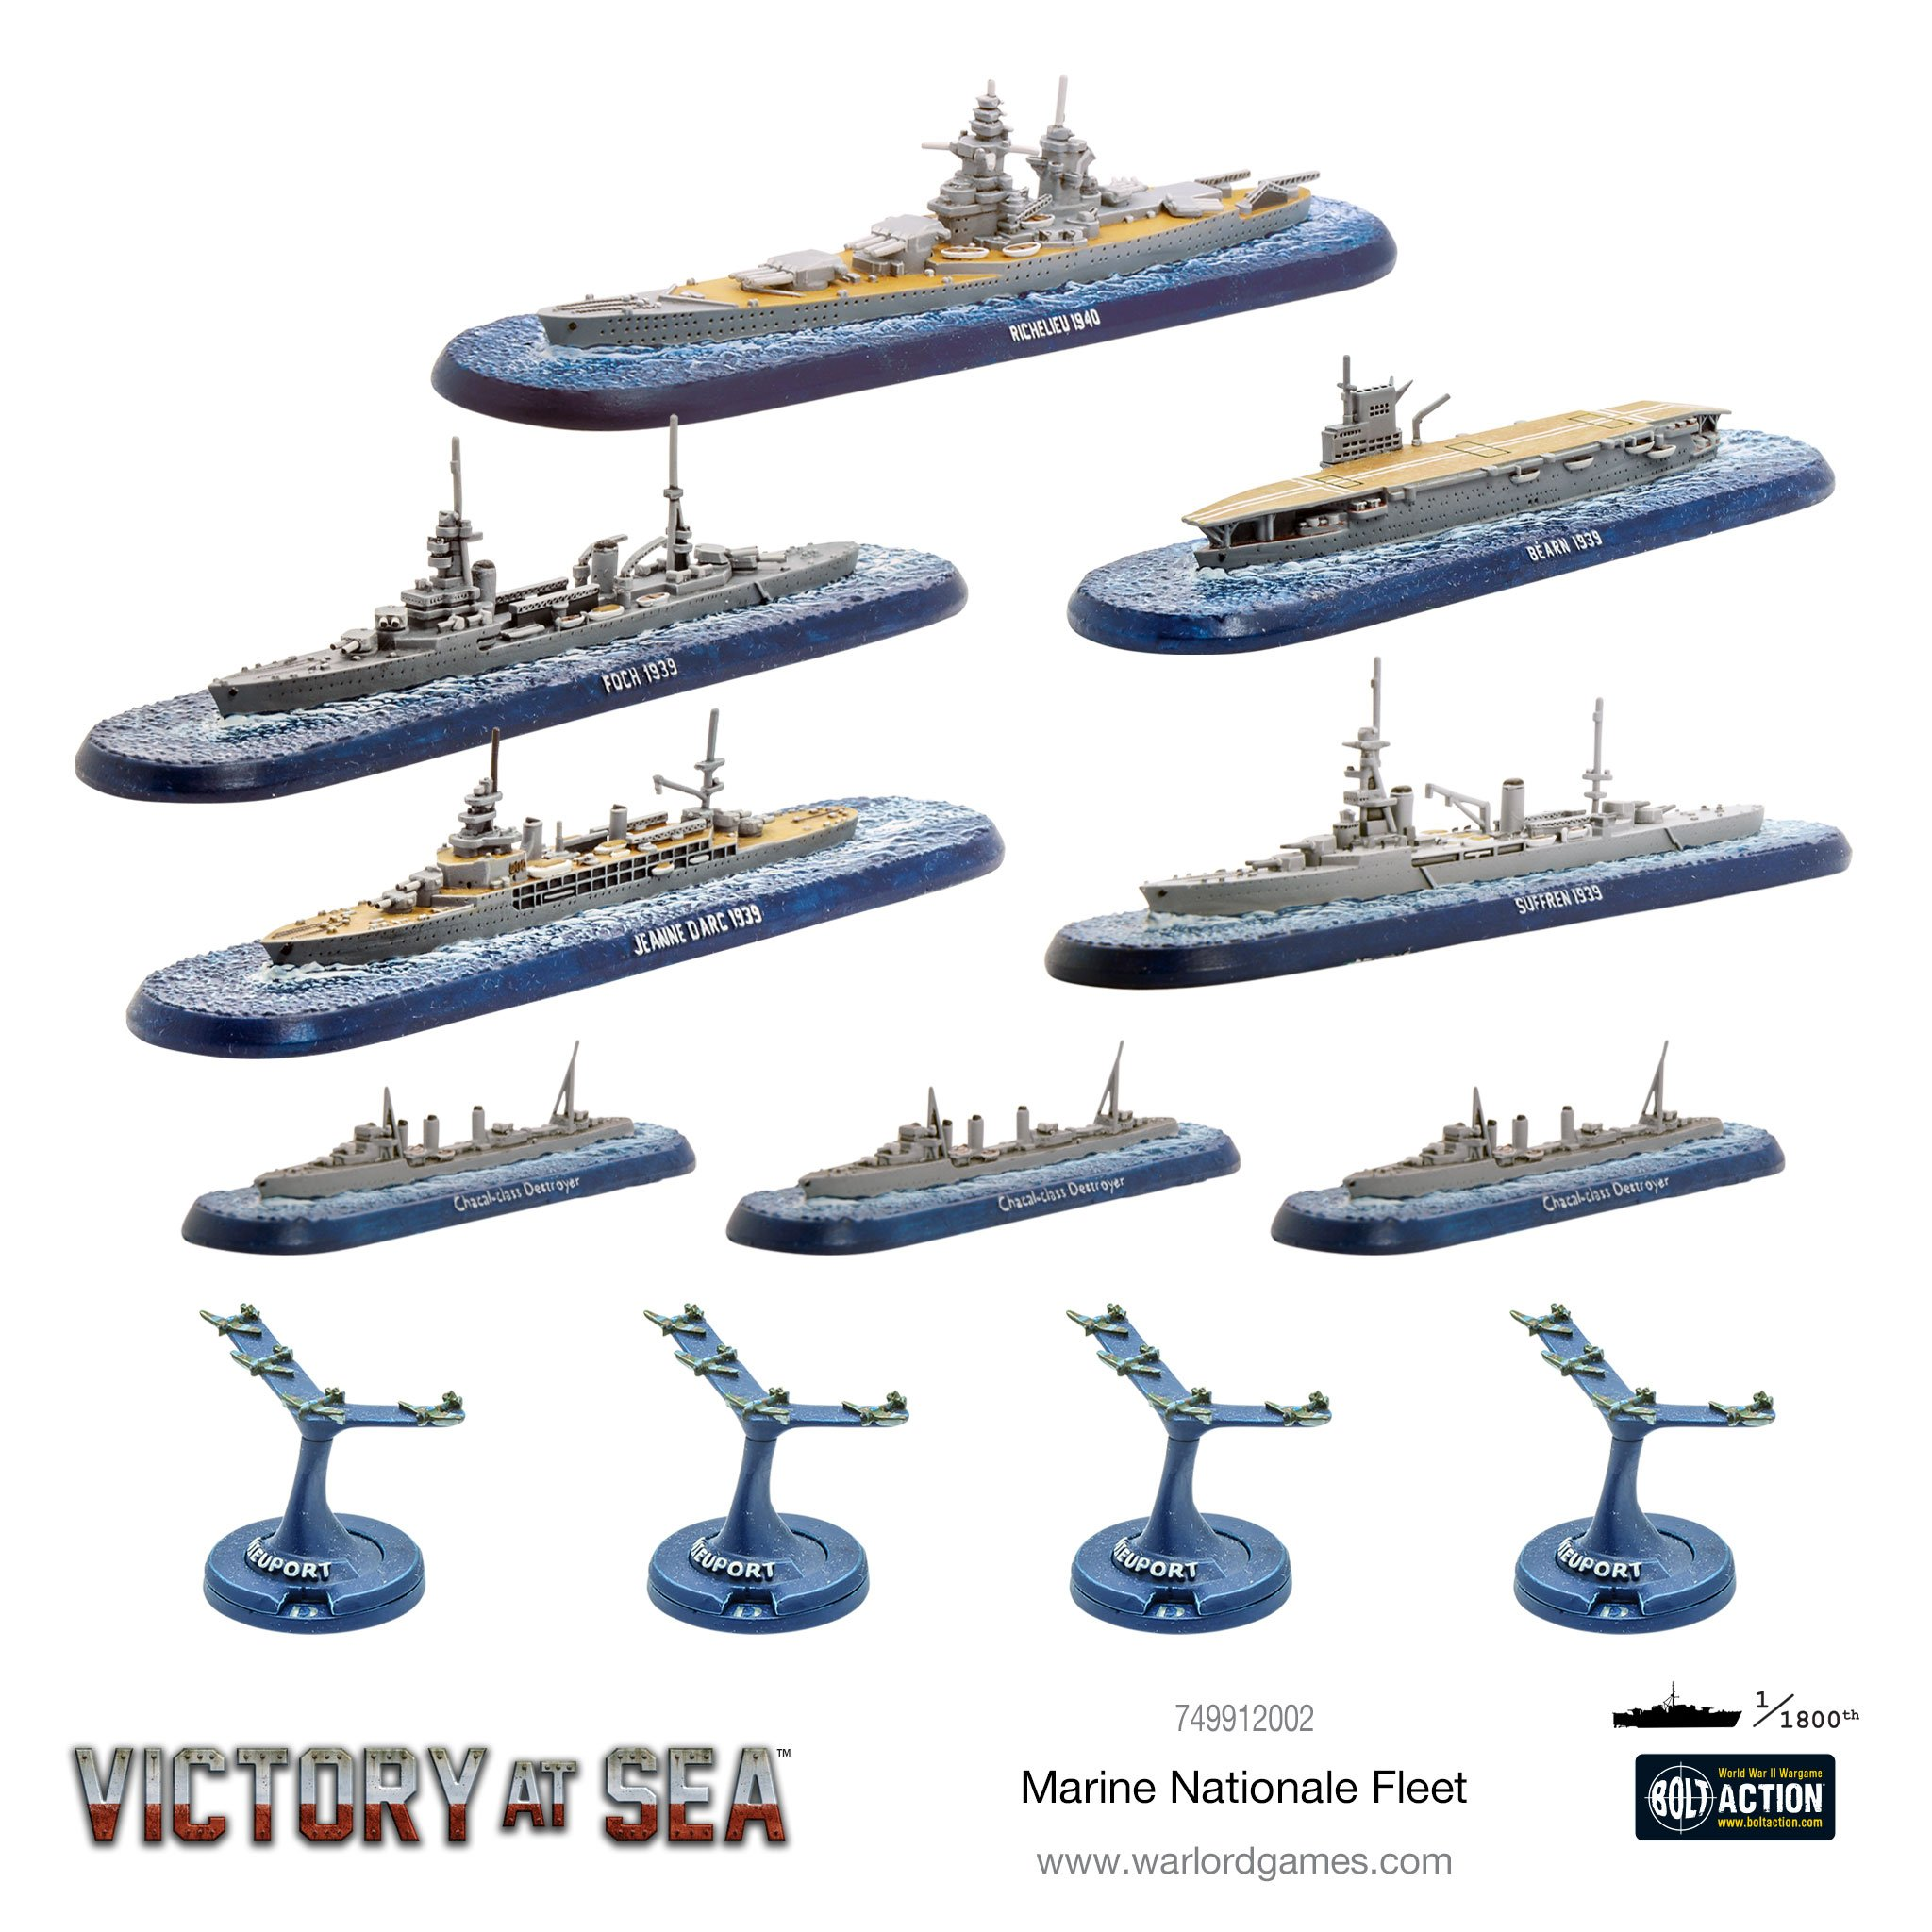 Marine Nationale Fleet - Victory At Sea